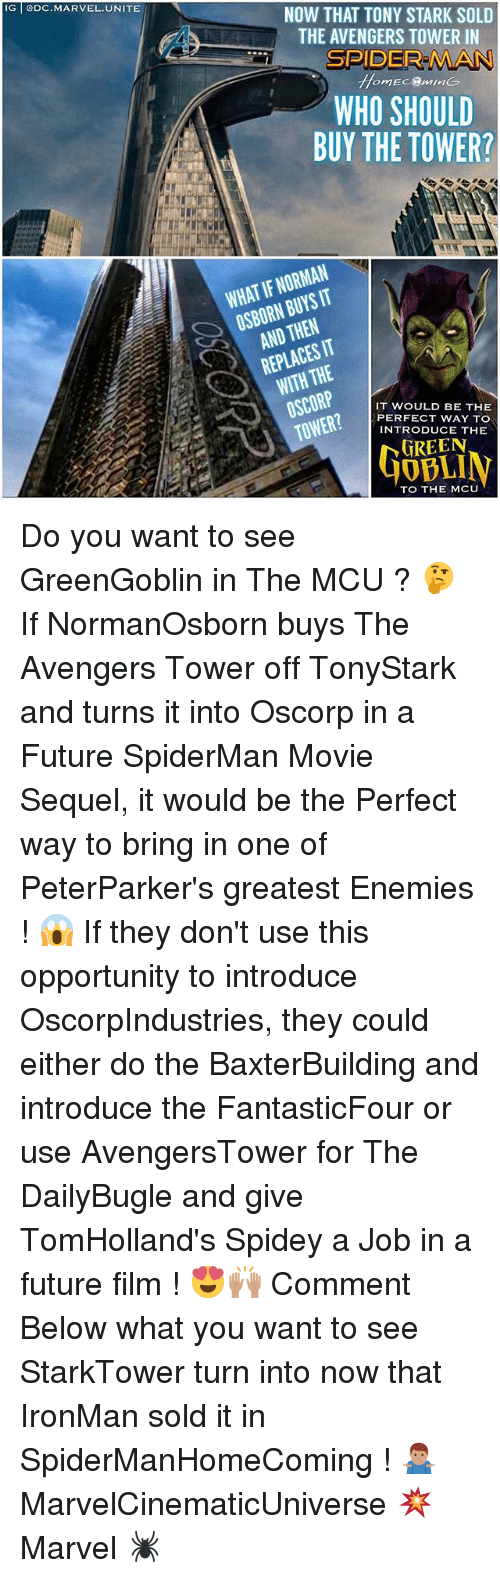 normans: IG DC.MARVEL.UNITE  NOW THAT TONY STARK SOLD  THE AVENGERS TOWER IN  SPIDER MAN  WHO SHOULD  BUY THE TOWER?  WHAT IF NORMAN  OSBORN BUYS IT  AND THEN  REPLACES IT  WITH THE  IT WOULD BE THE  PERFECT WAY TO  INTRODUCE THE  GREEN  40BLI  TO THE MCU Do you want to see GreenGoblin in The MCU ? 🤔 If NormanOsborn buys The Avengers Tower off TonyStark and turns it into Oscorp in a Future SpiderMan Movie Sequel, it would be the Perfect way to bring in one of PeterParker's greatest Enemies ! 😱 If they don't use this opportunity to introduce OscorpIndustries, they could either do the BaxterBuilding and introduce the FantasticFour or use AvengersTower for The DailyBugle and give TomHolland's Spidey a Job in a future film ! 😍🙌🏽 Comment Below what you want to see StarkTower turn into now that IronMan sold it in SpiderManHomeComing ! 🤷🏽‍♂️ MarvelCinematicUniverse 💥 Marvel 🕷